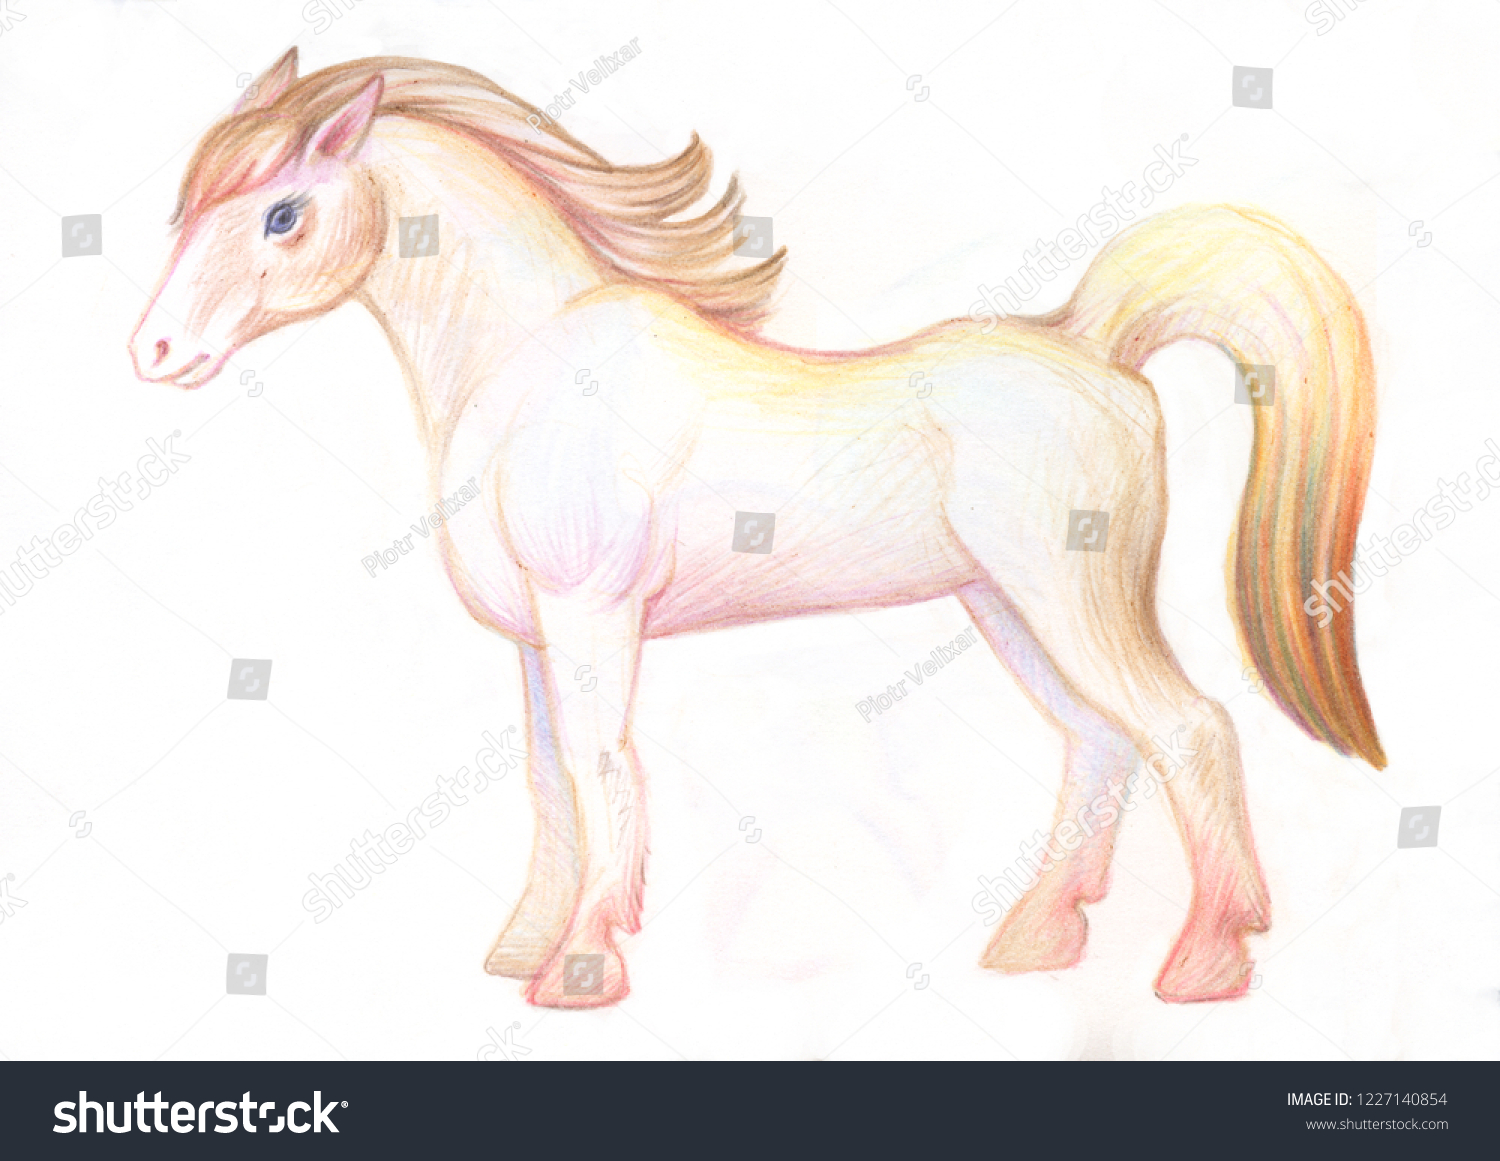 Pencil drawing illustration for children image of animals with colored pencils white young